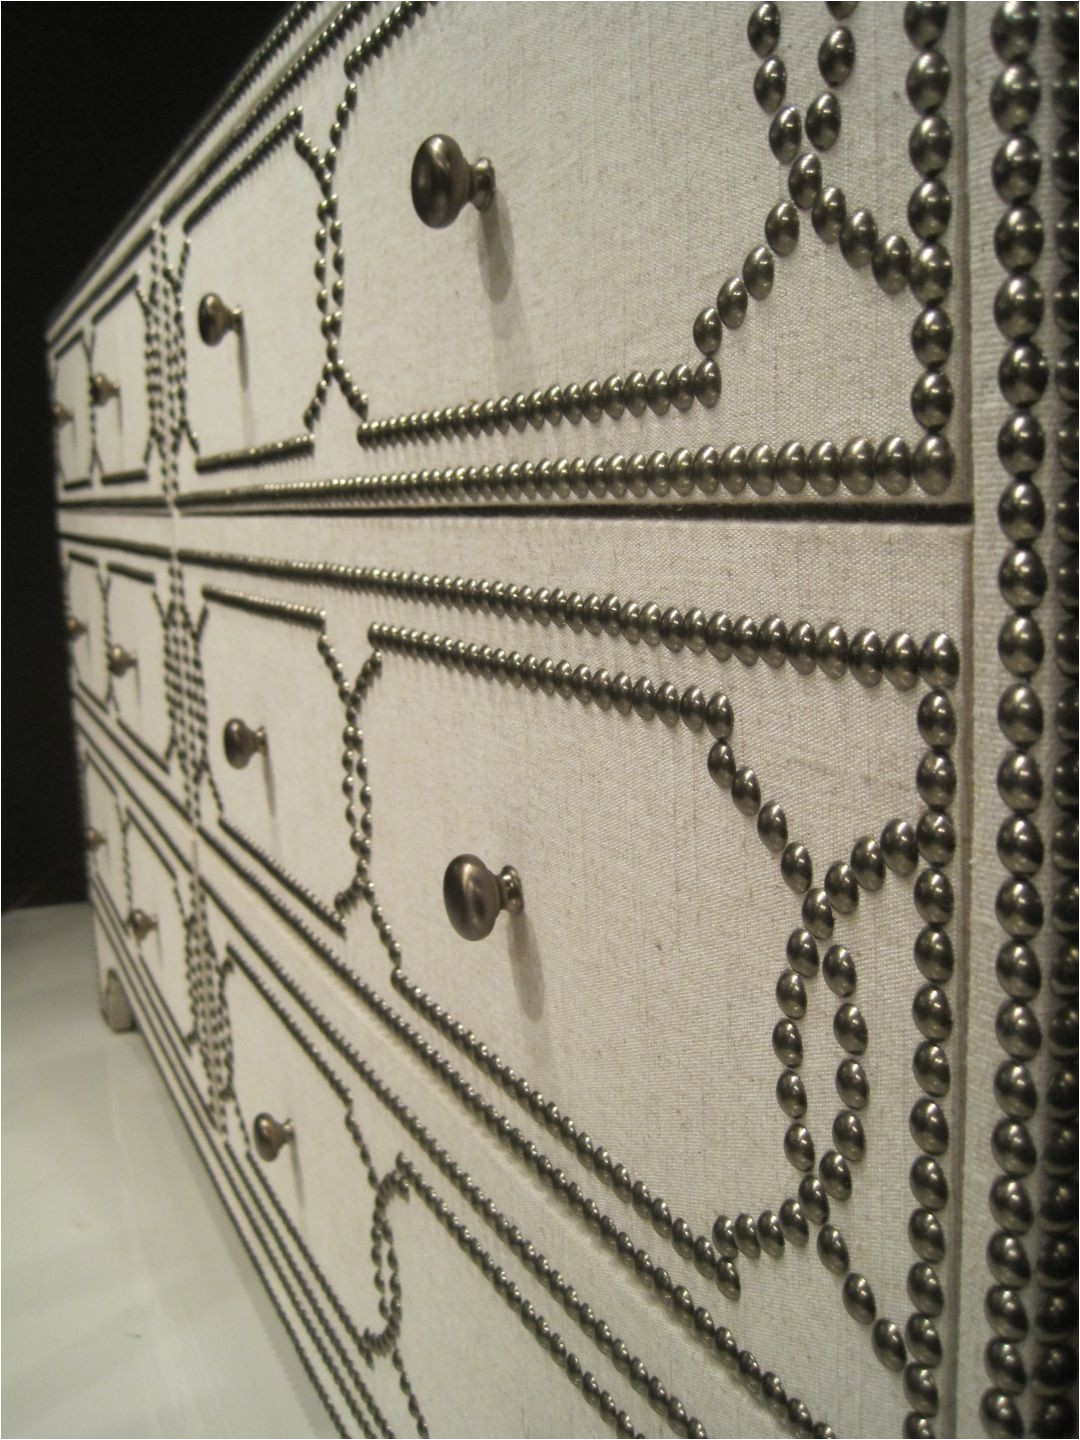 Drop Pulls for Dressers Nailhead Over Fabric Covered Dresser Do This with Expedit Door